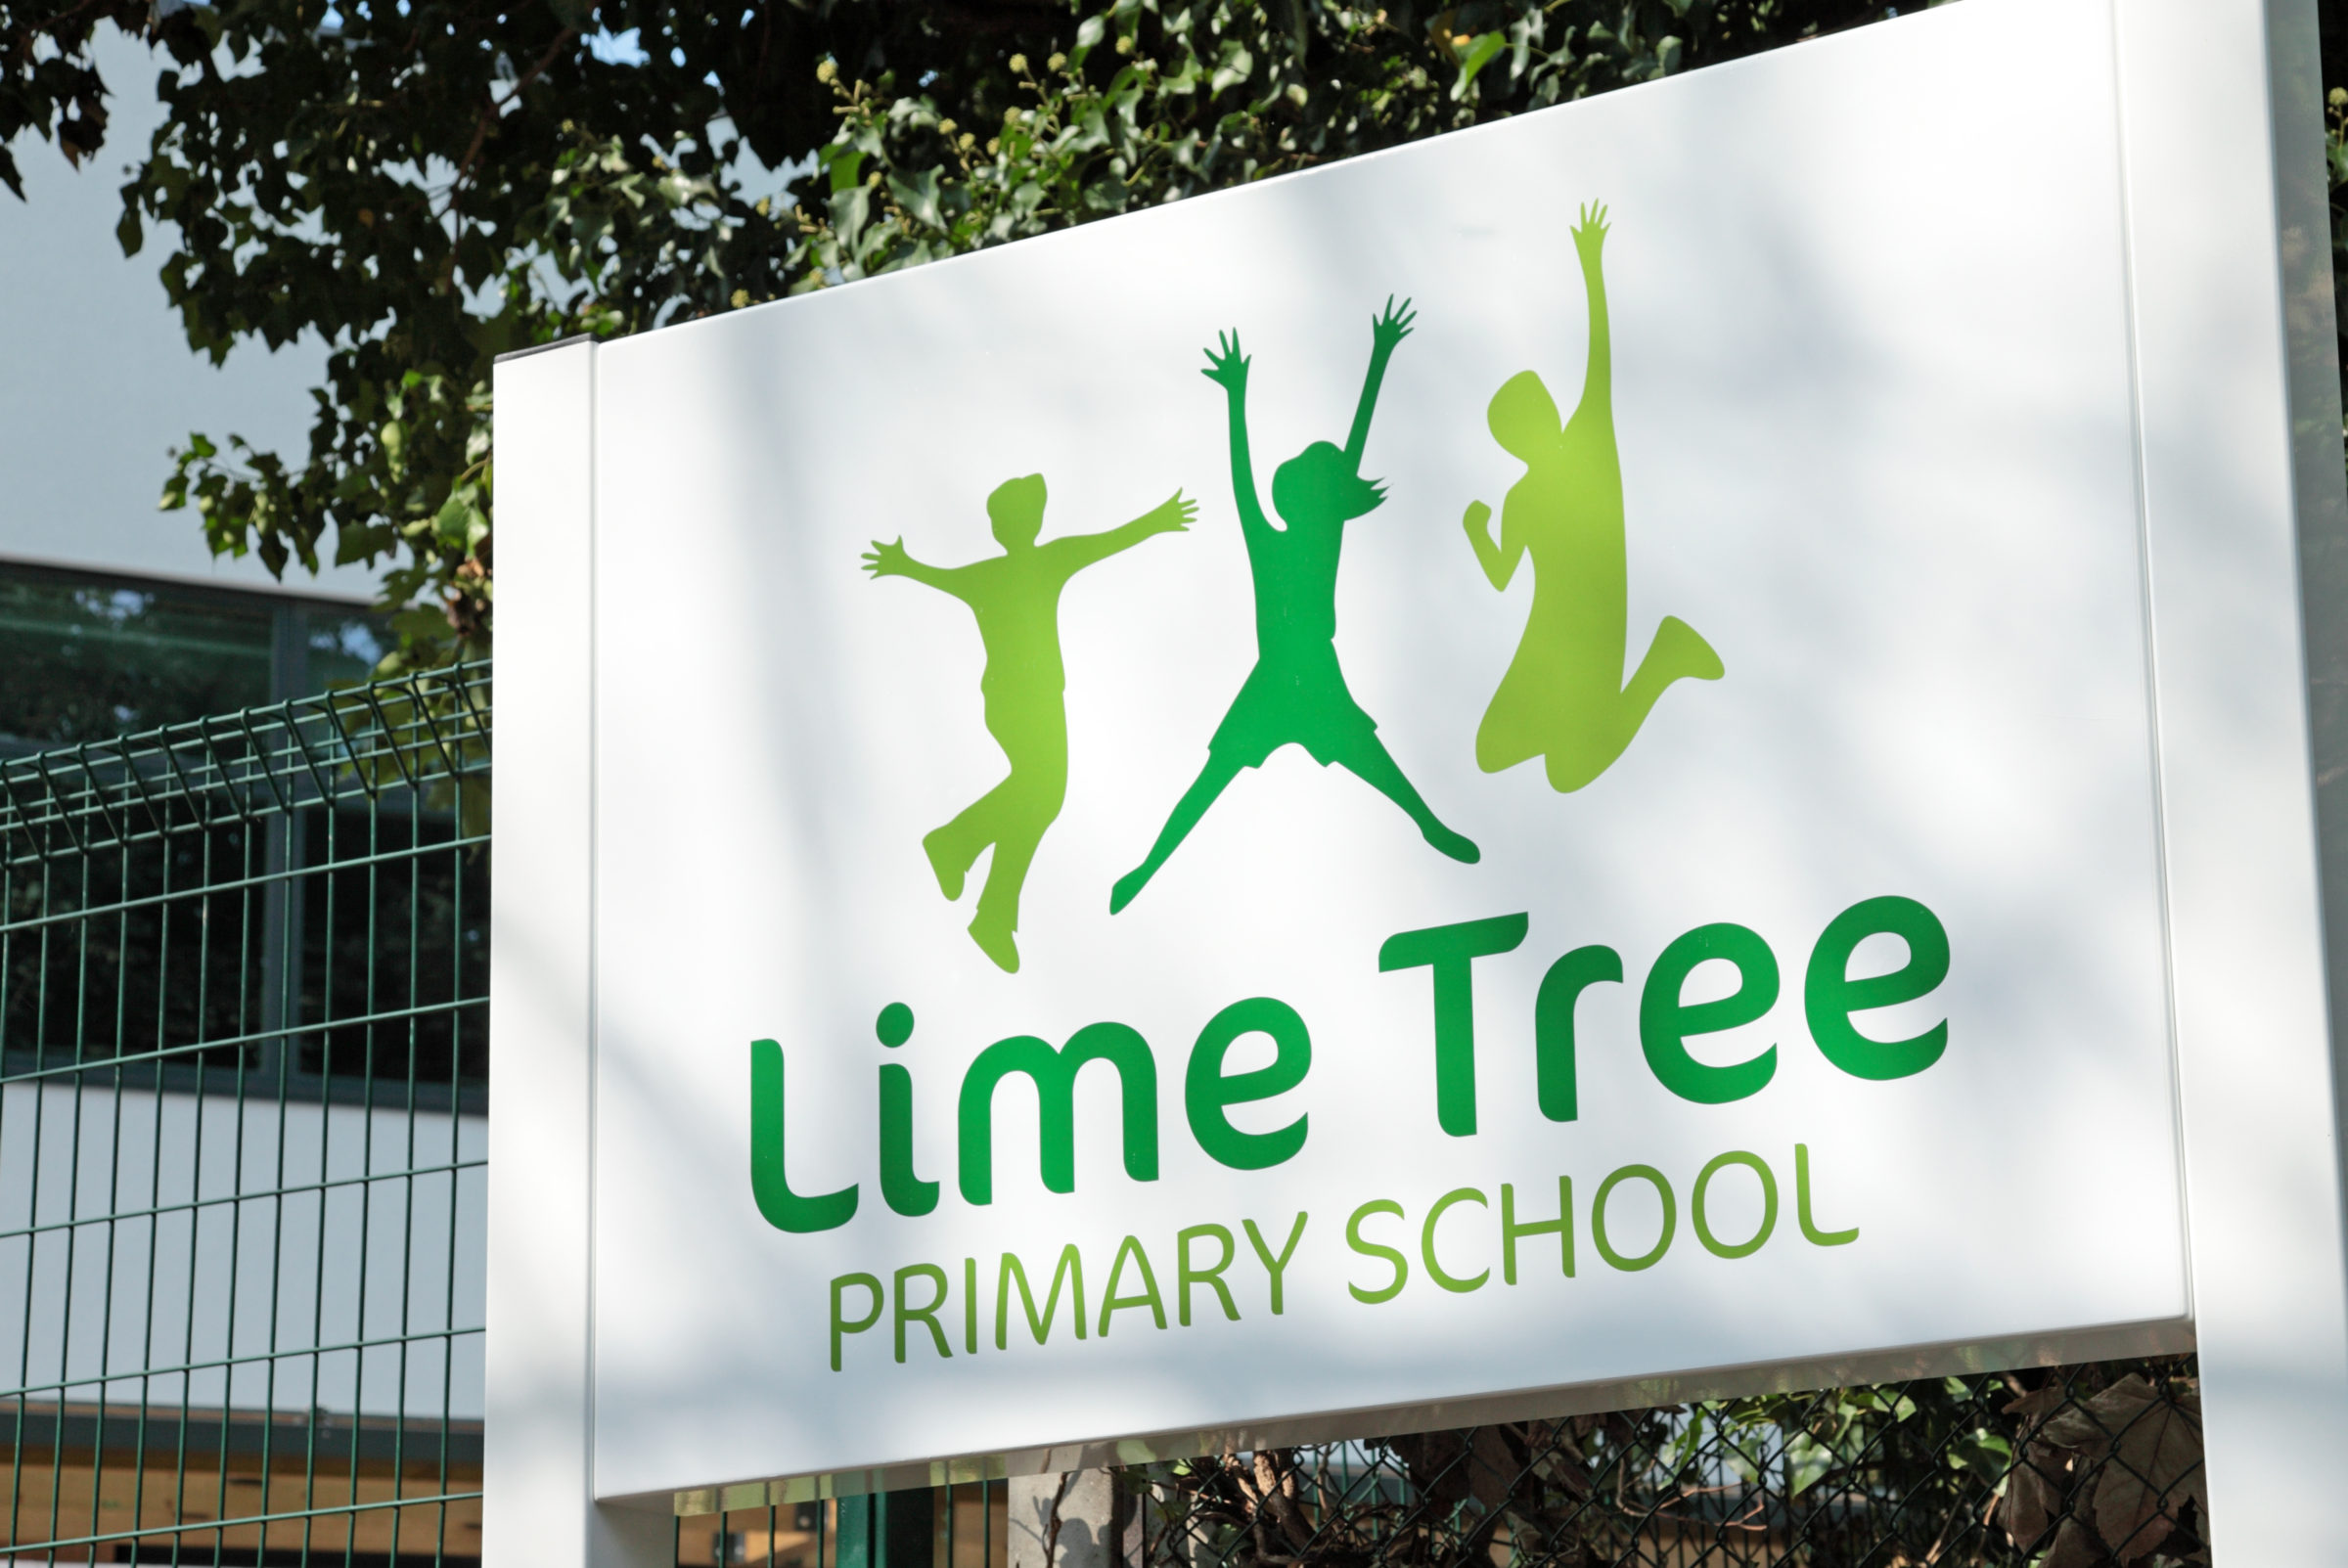 Lime Tree Primary School, Surbiton